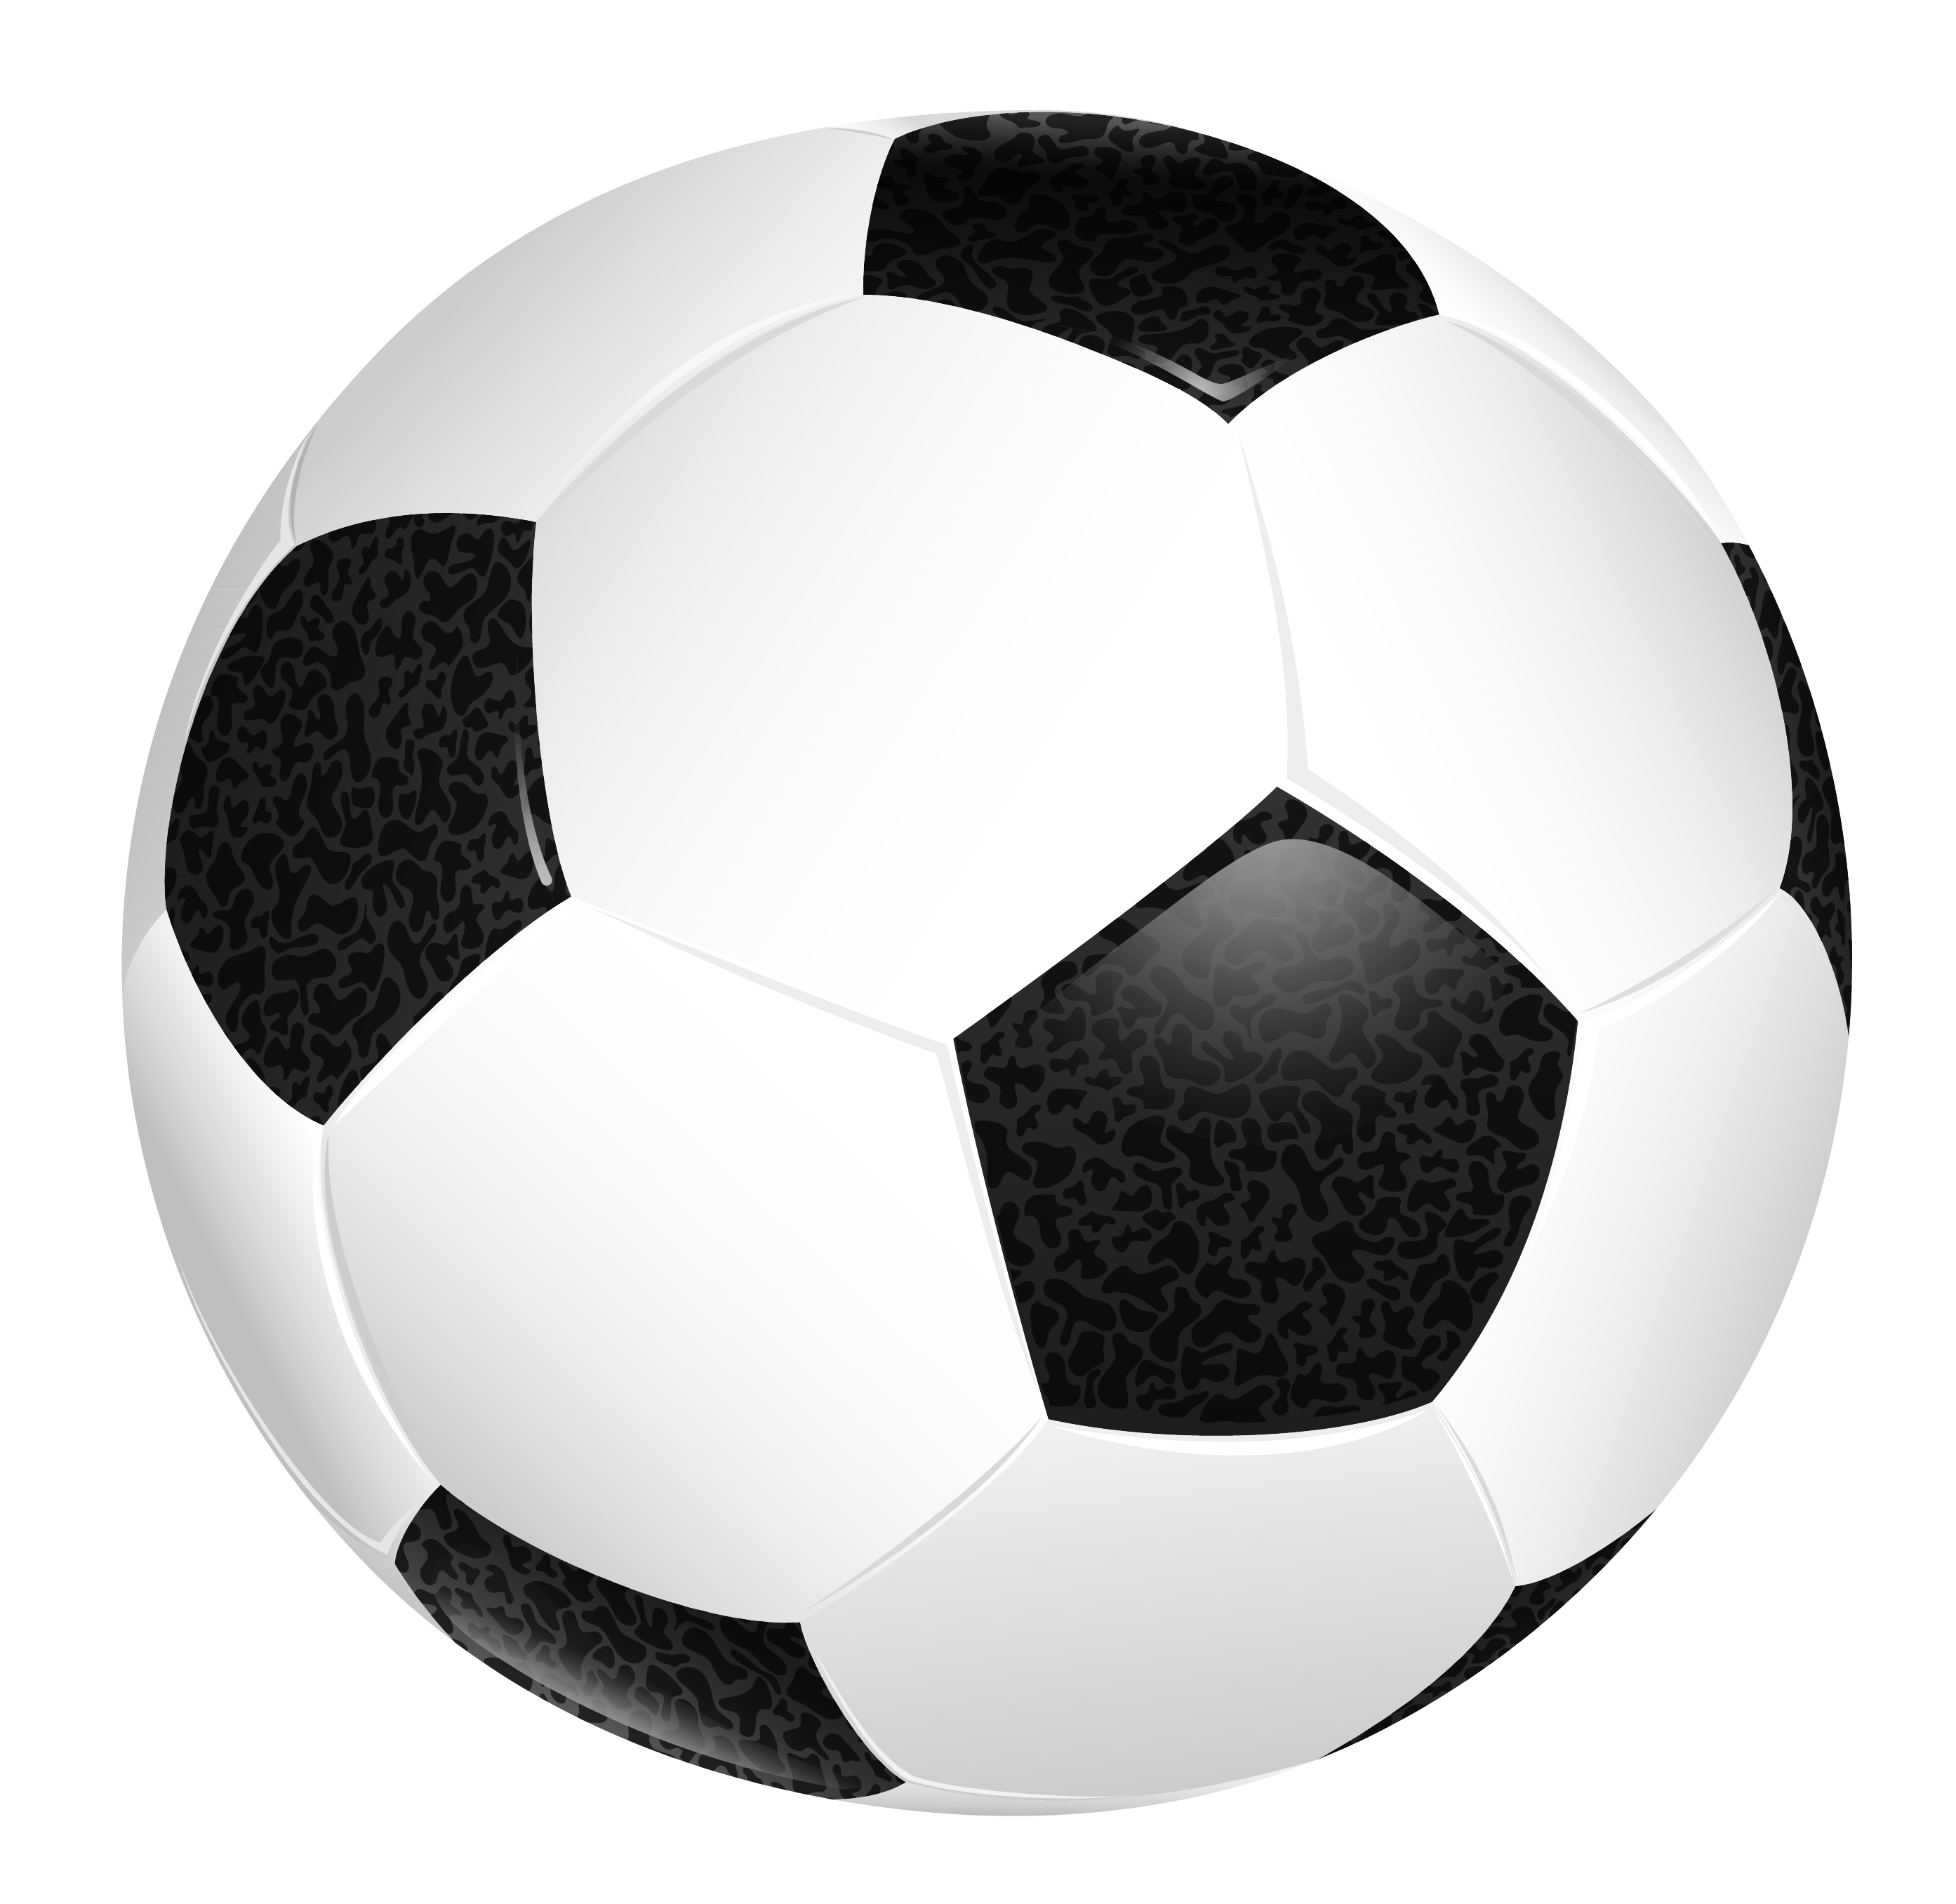 Now you can download Football In PNG